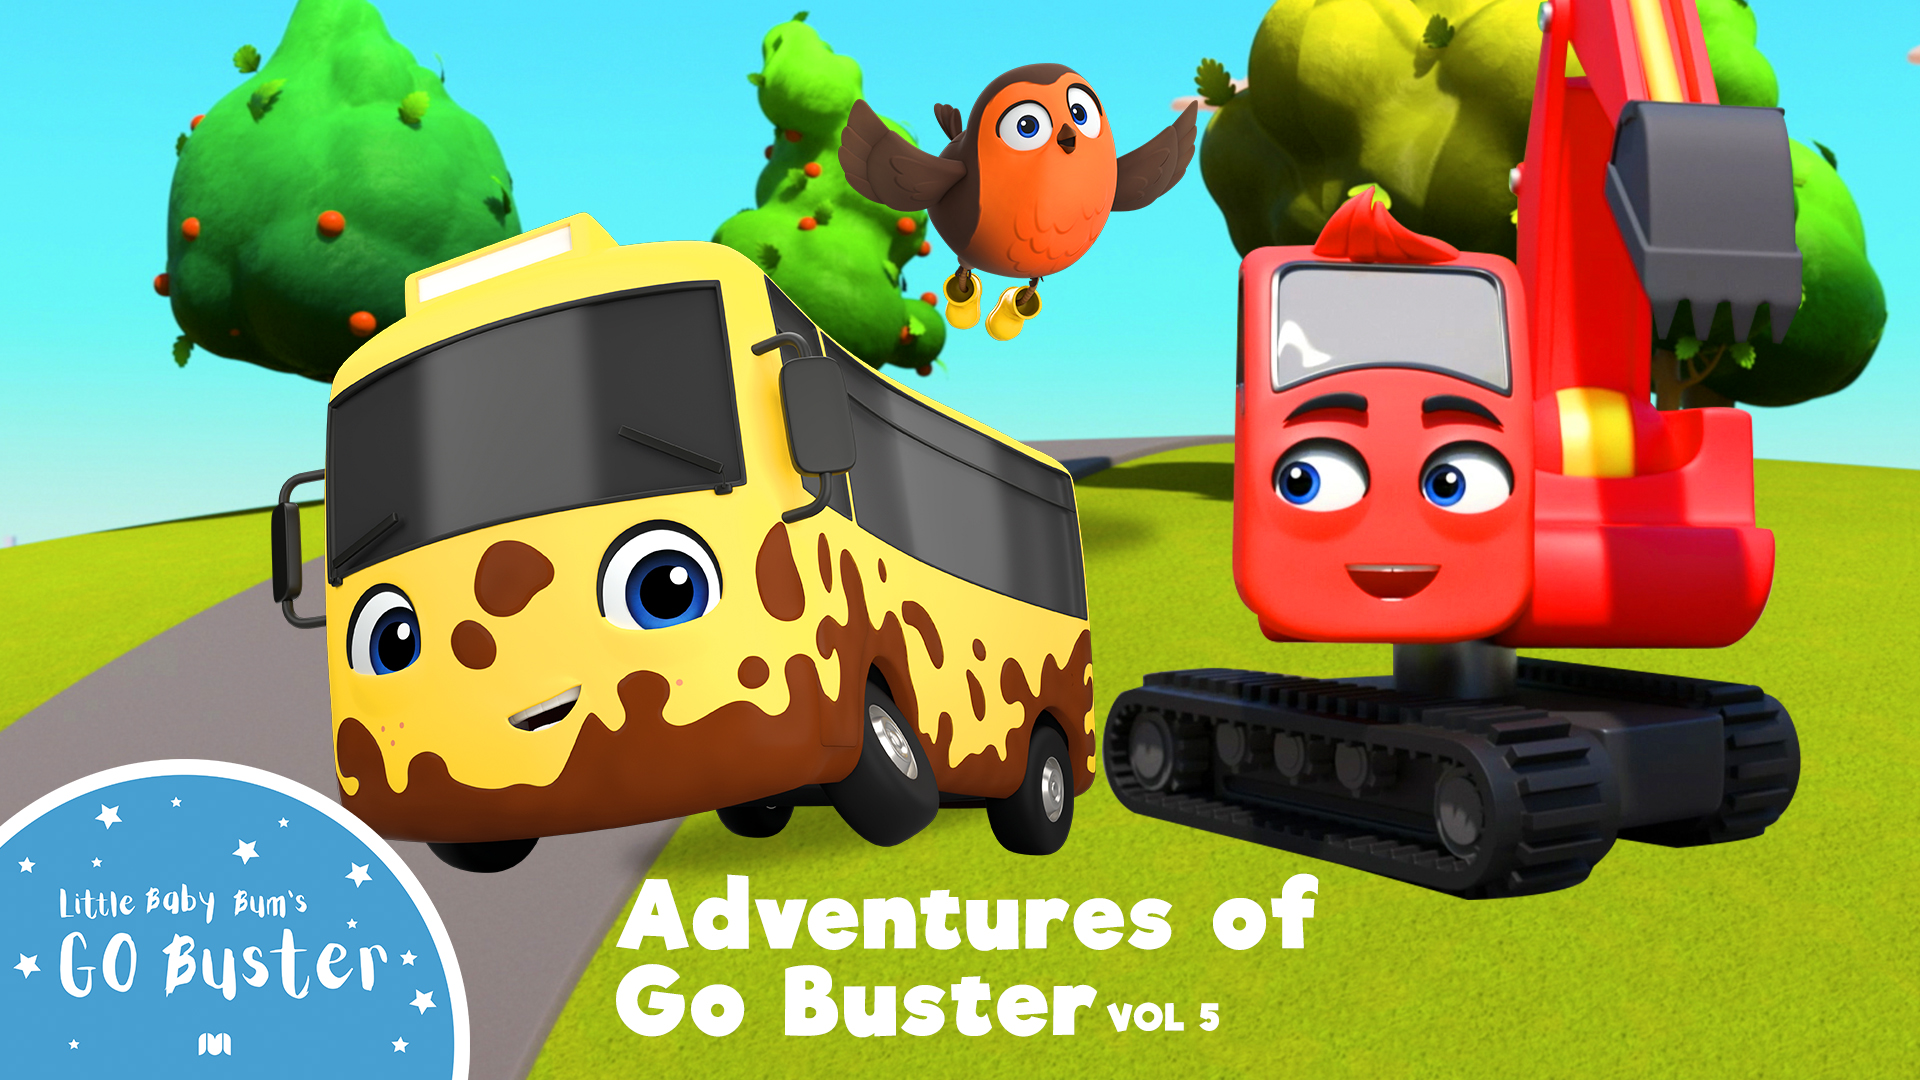 Go Buster - Adventures of Go Buster (Made by Little Baby Bum) - Season 5